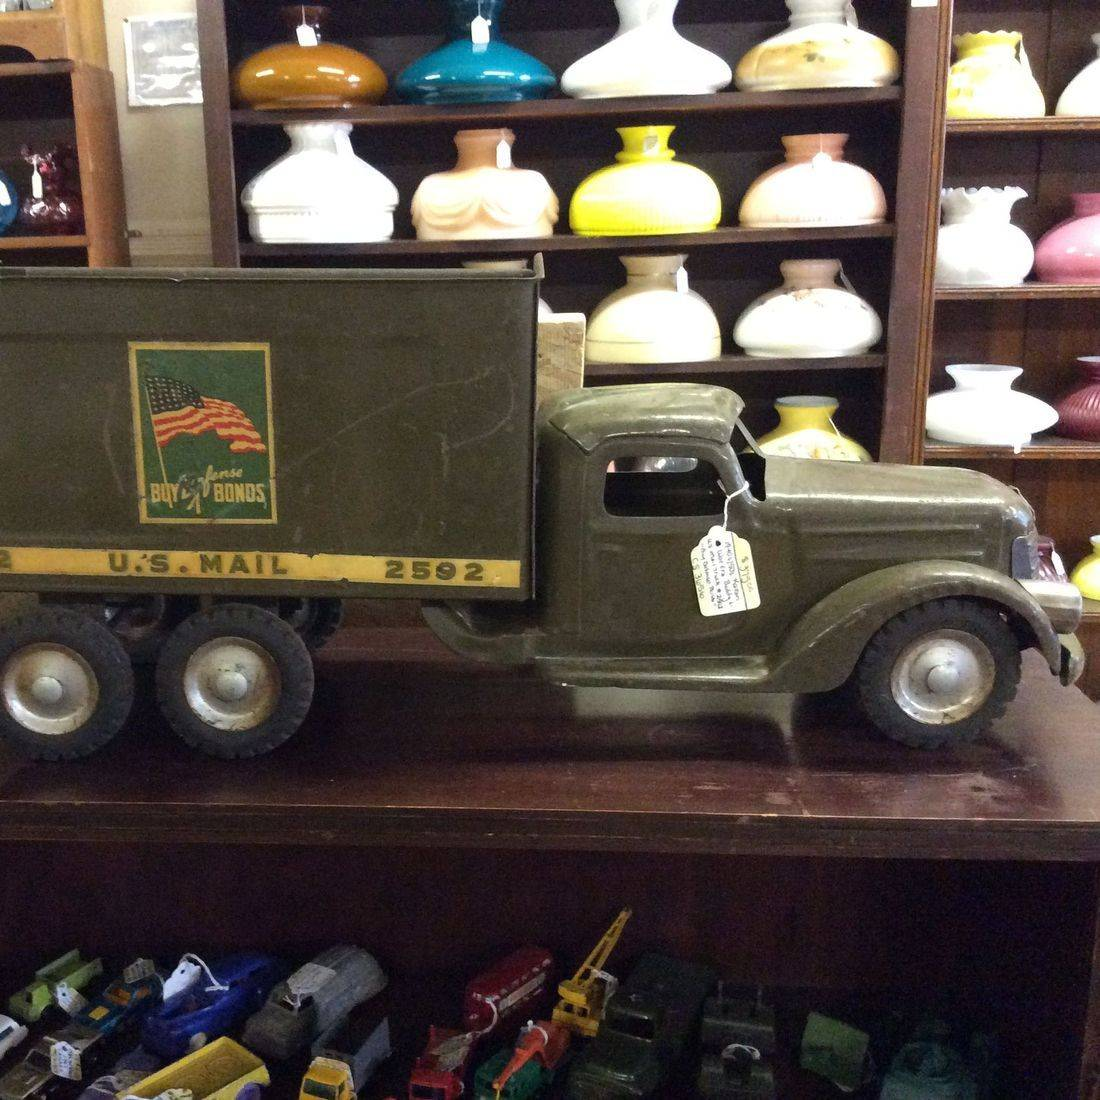 1940's/1950's Korean War Era 'Buddy L.' , U.S. Mail Truck #2592 (no cargo box top)   $375.00